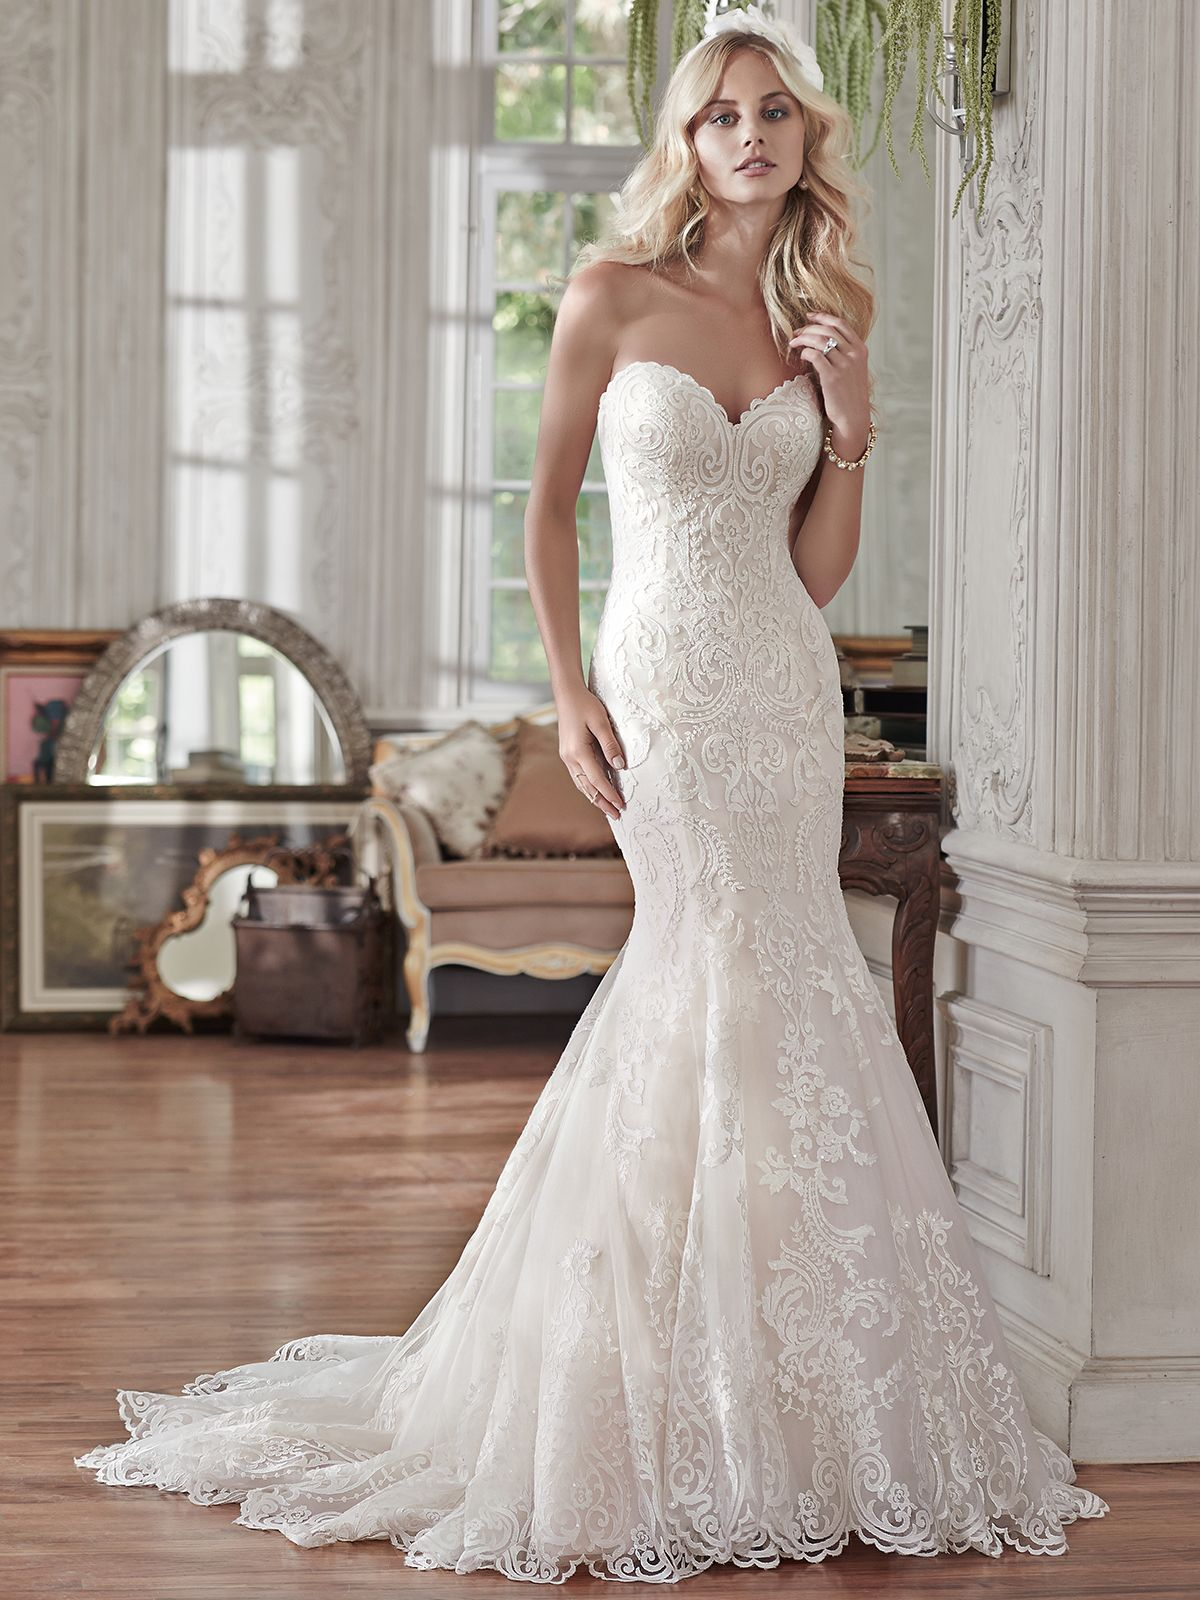 Lace sweetheart wedding dress  Maggie Sottero Rosamund Sweetheart Lace Fit And Flare Bridal Dress